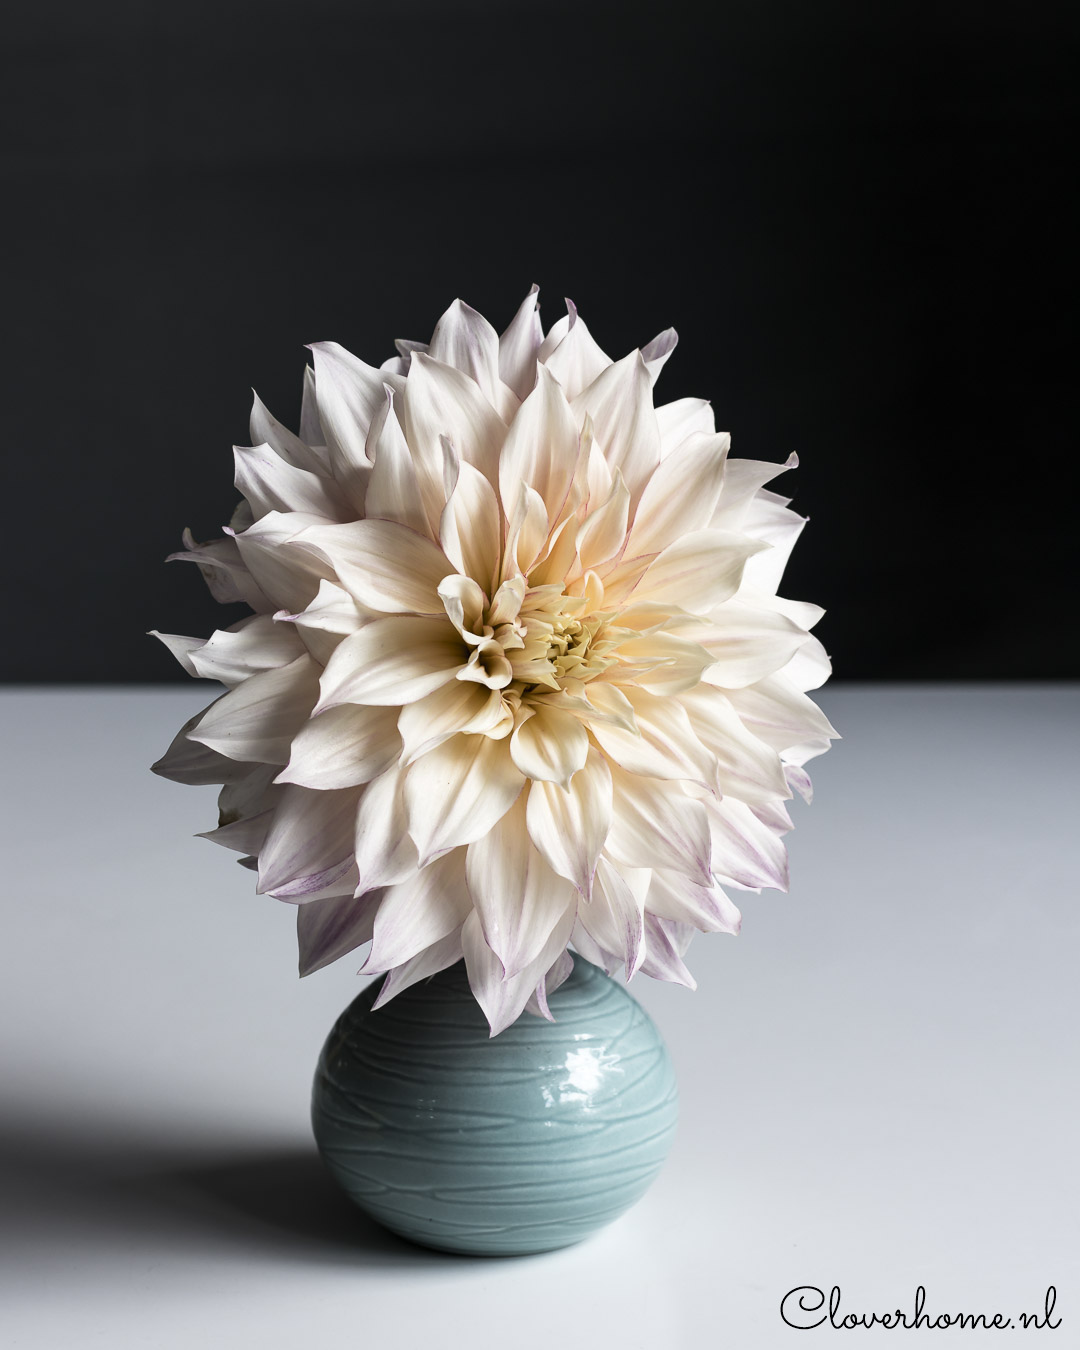 Dahlia garden review, trusted favourites: Café au Lait - Cloverhome.nl